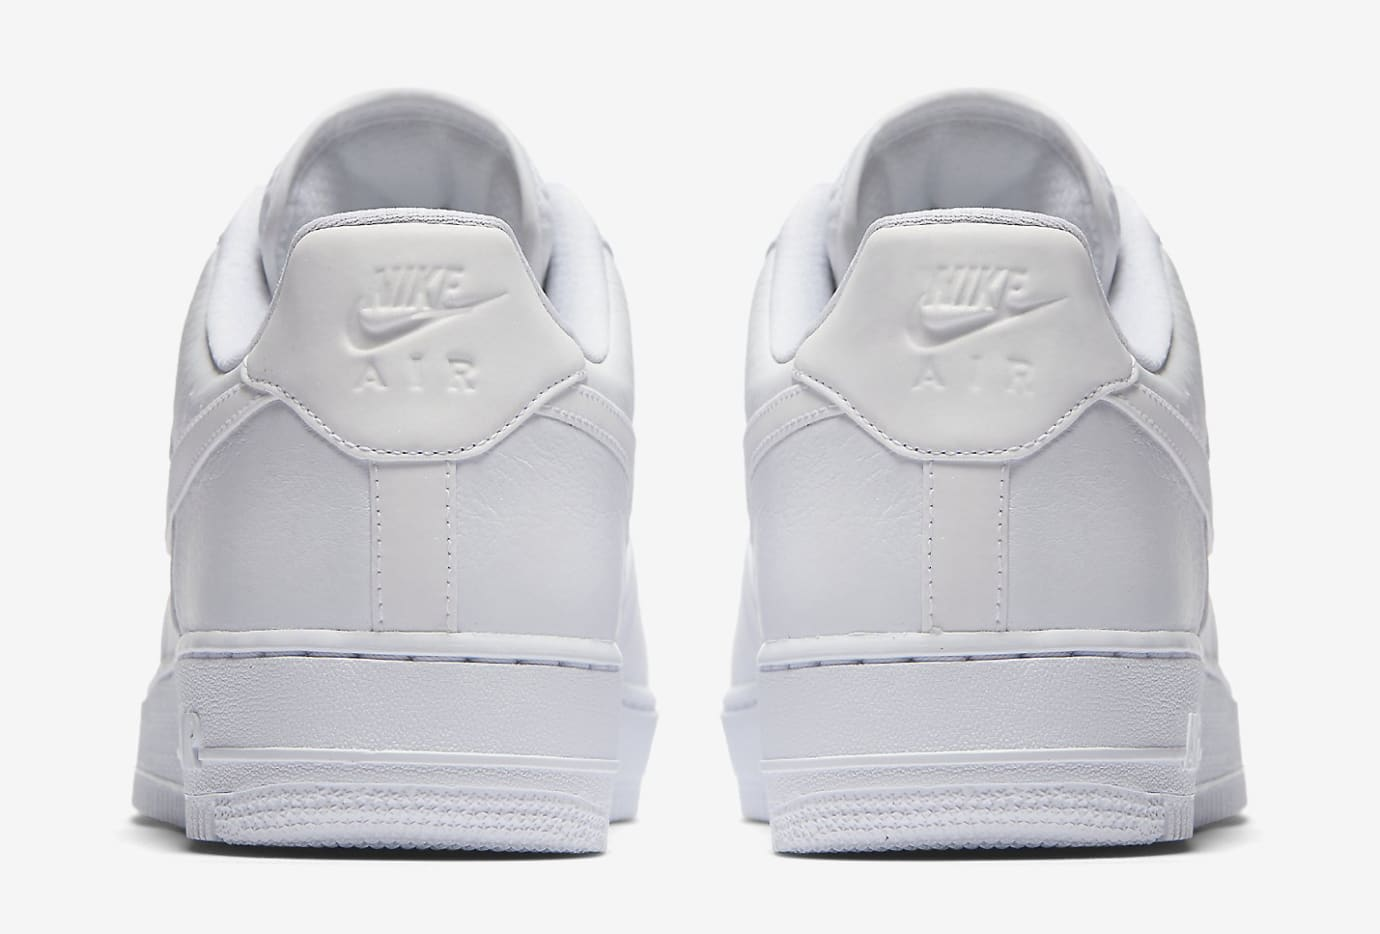 Nike Air Force 1 White Reflective 905345-100 Heel